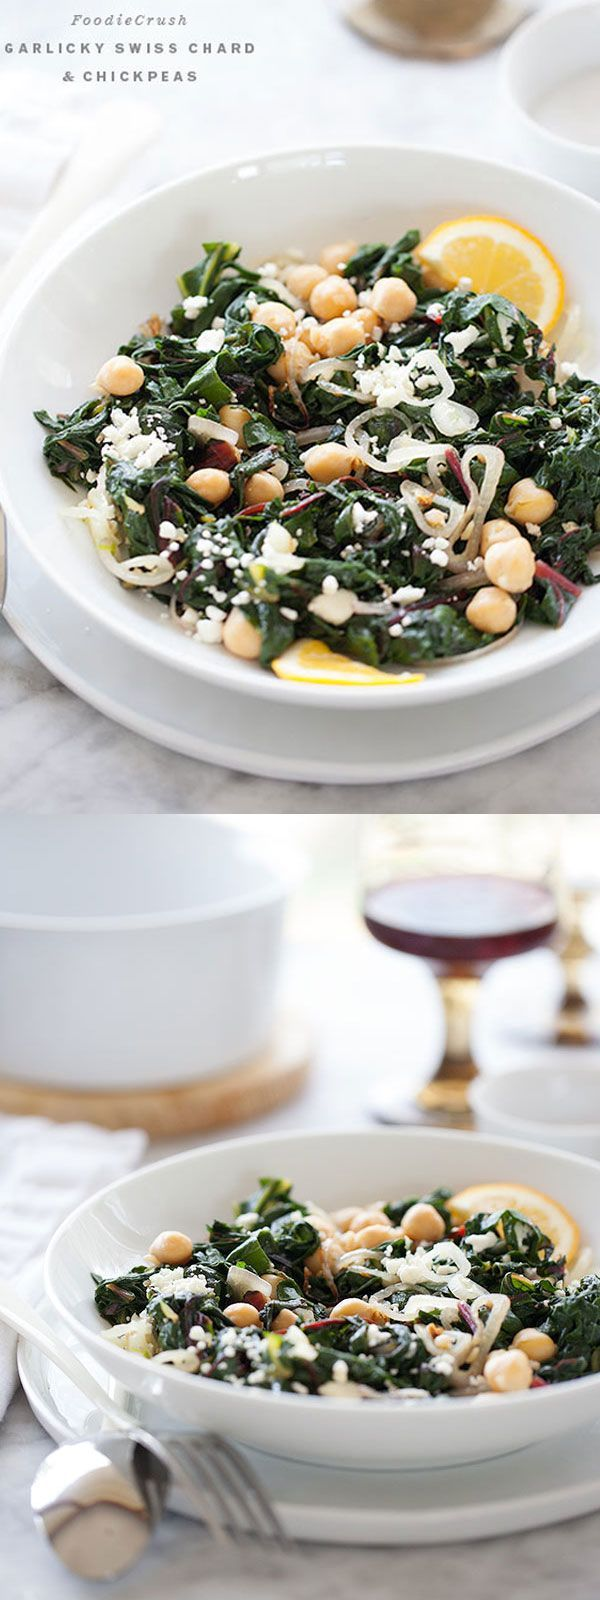 Garlicky Swiss Chard and Chickpeas | http://foodiecrush.com